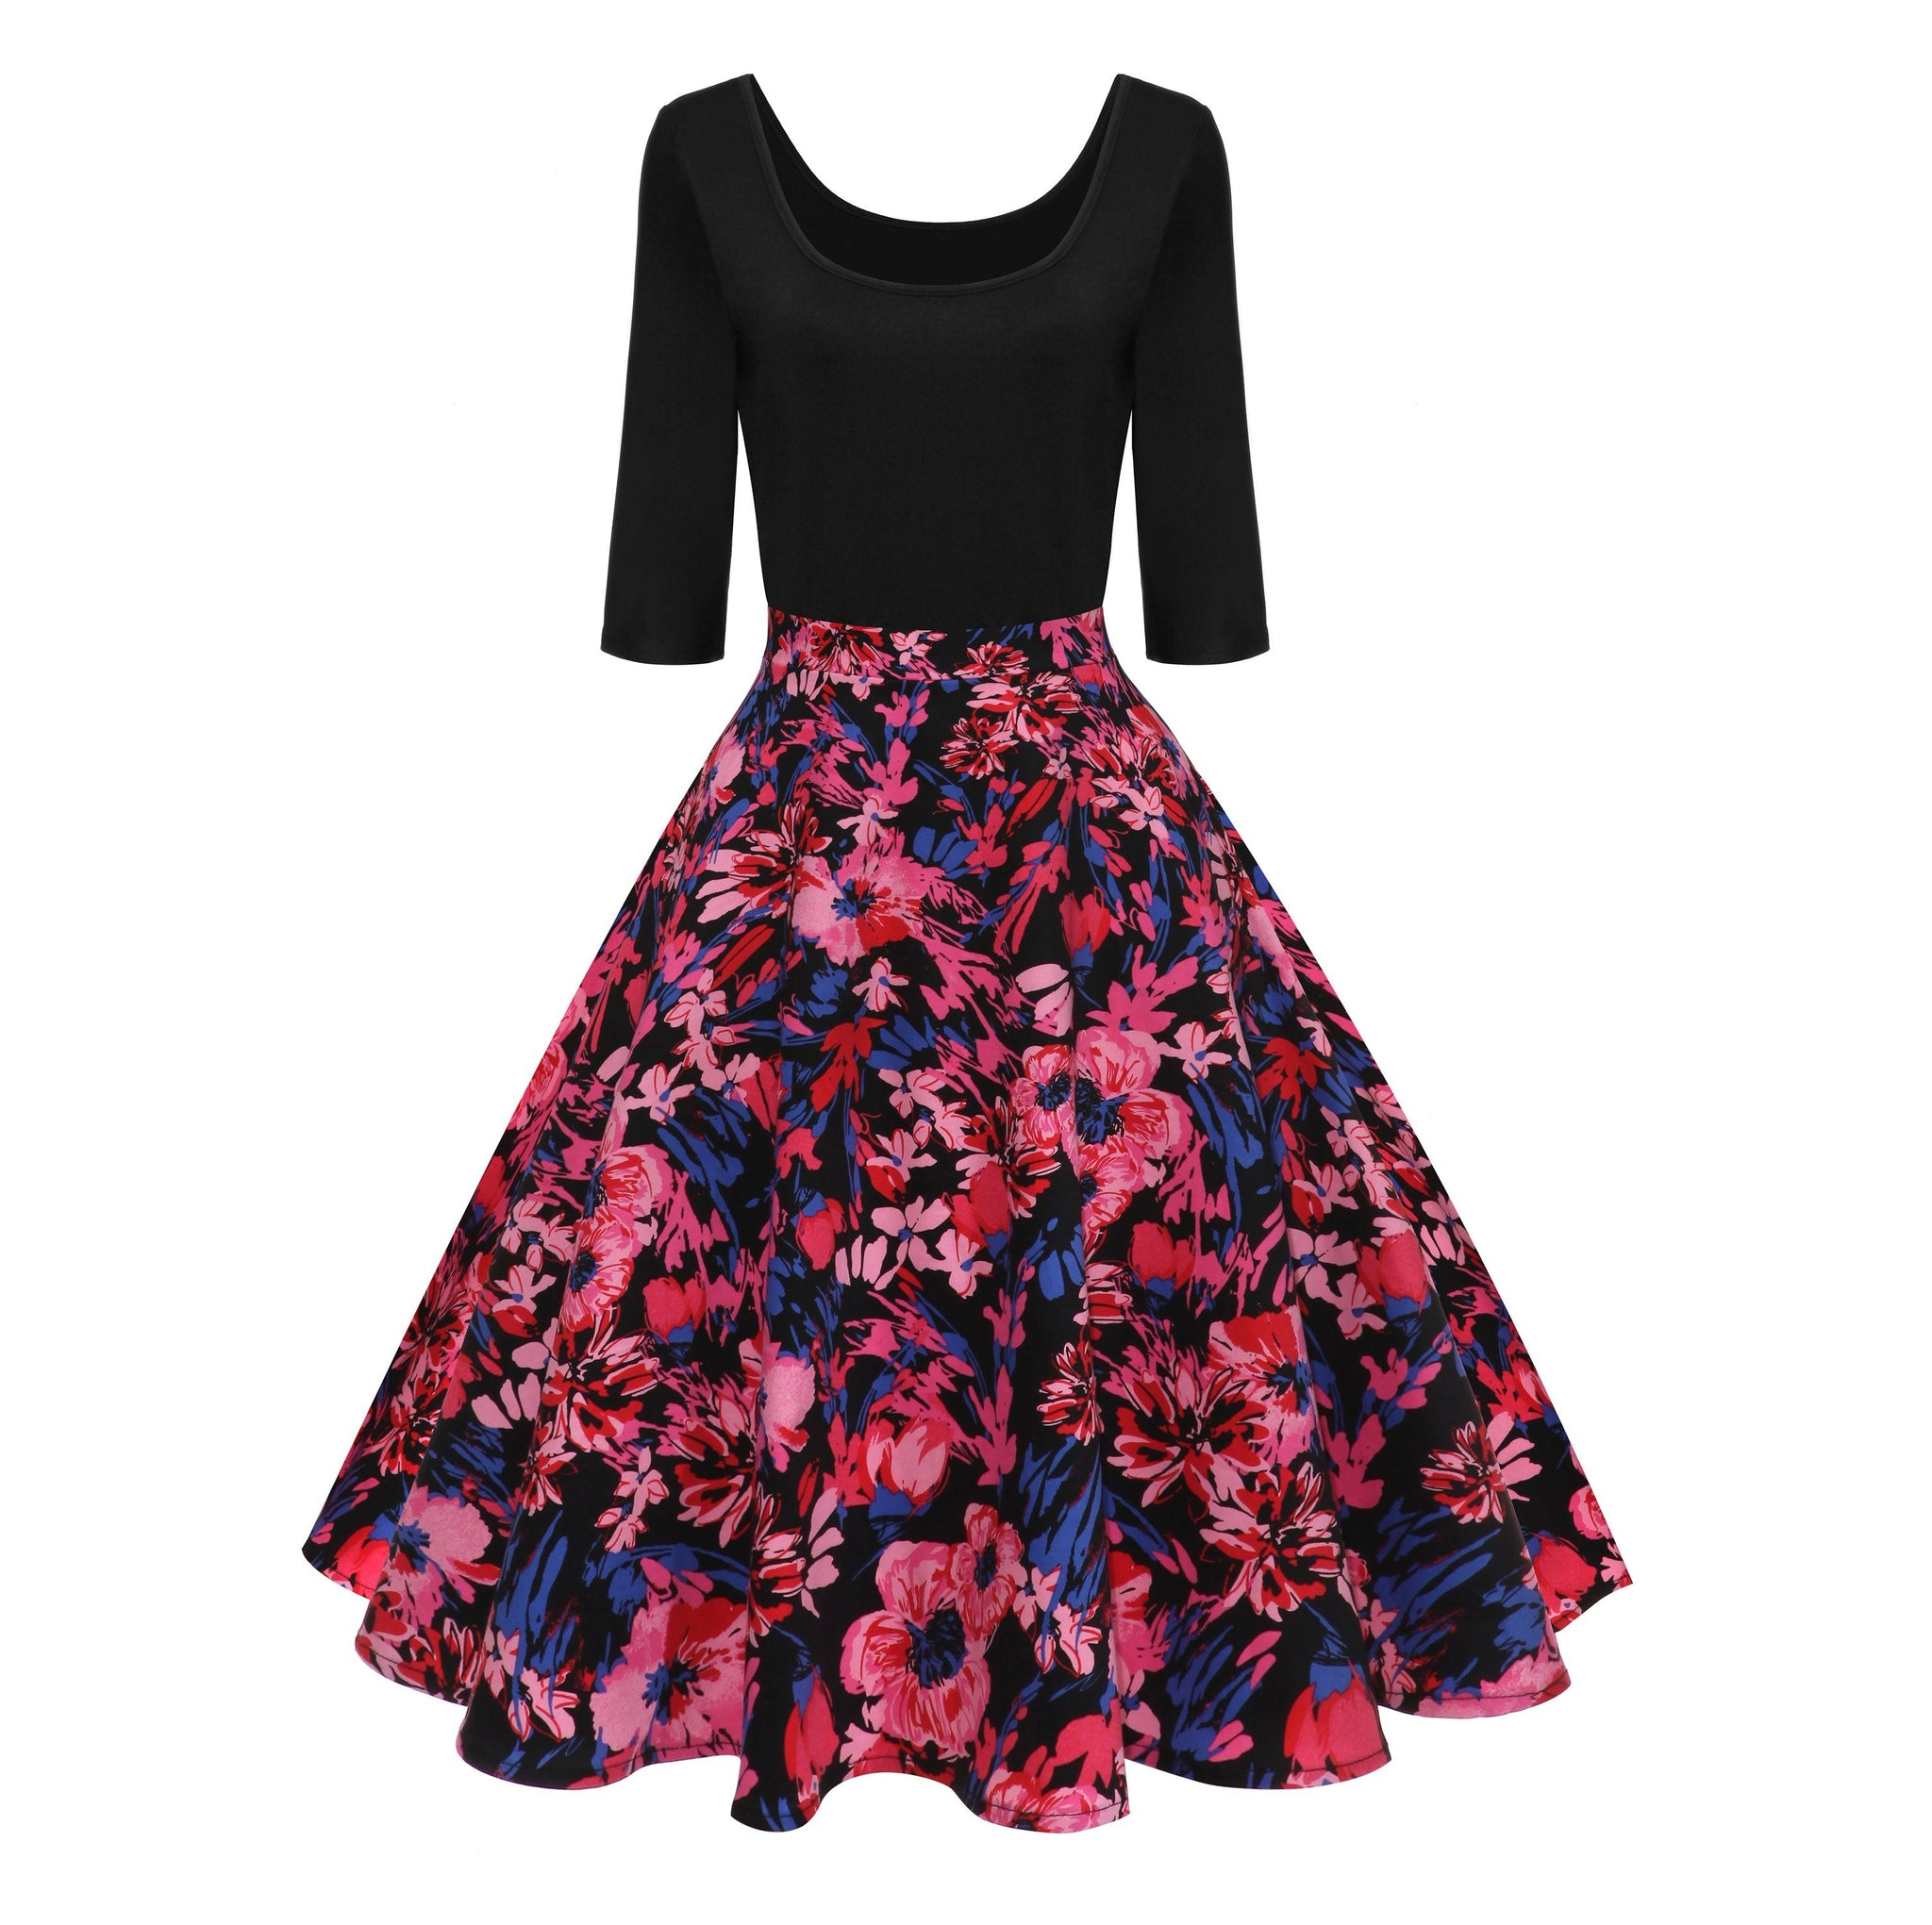 Women's 1950s Vintage Floral Patchwork Swing Party Dress